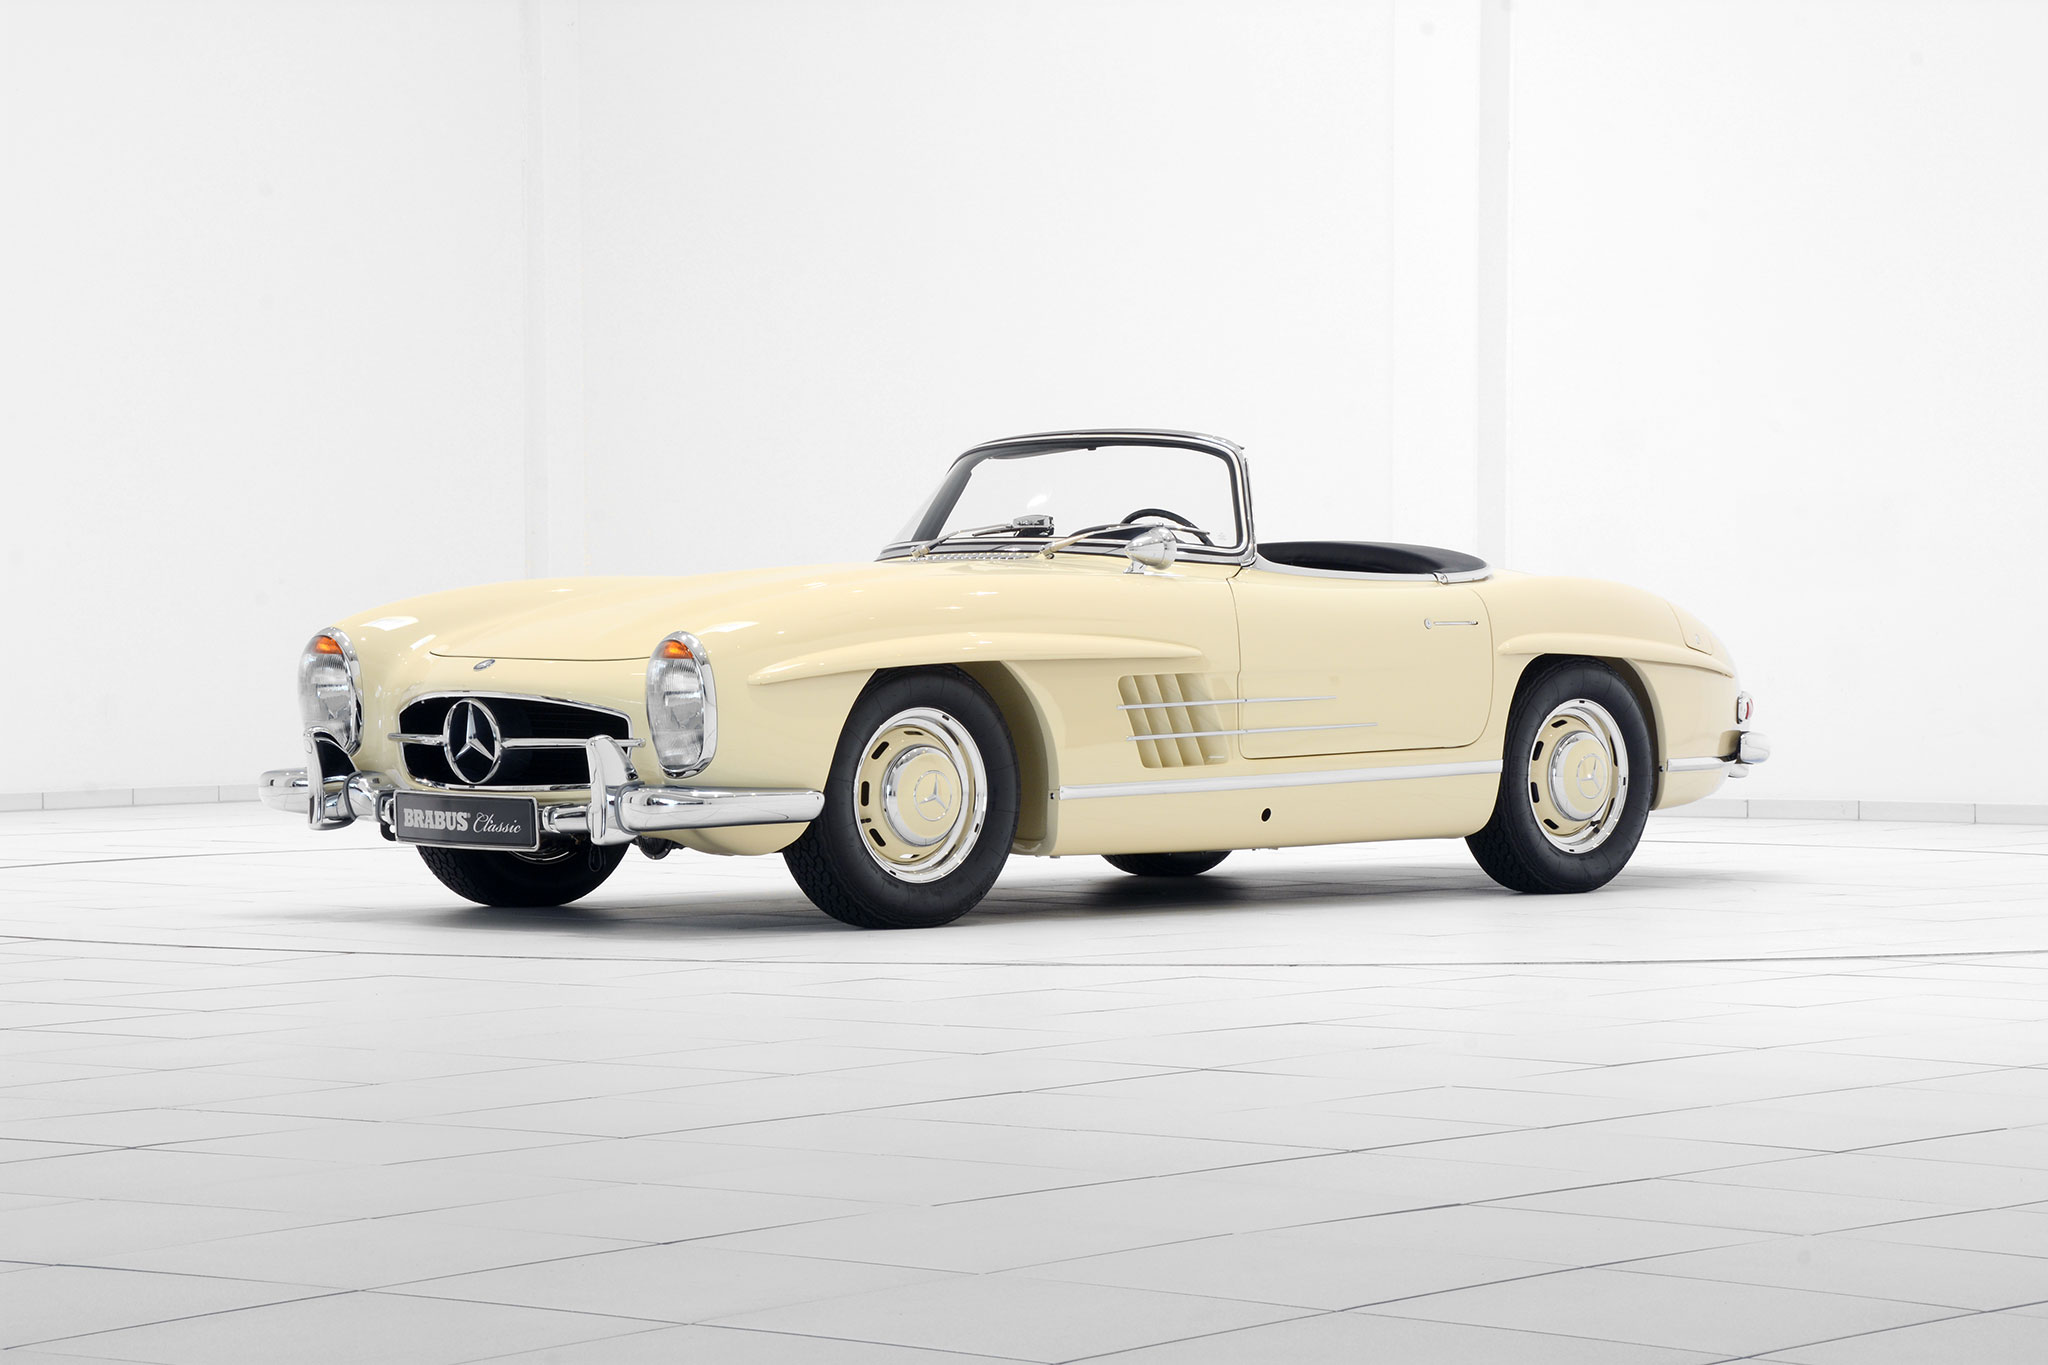 Brabus promotes classic services with restored mercedes for Mercedes benz car service